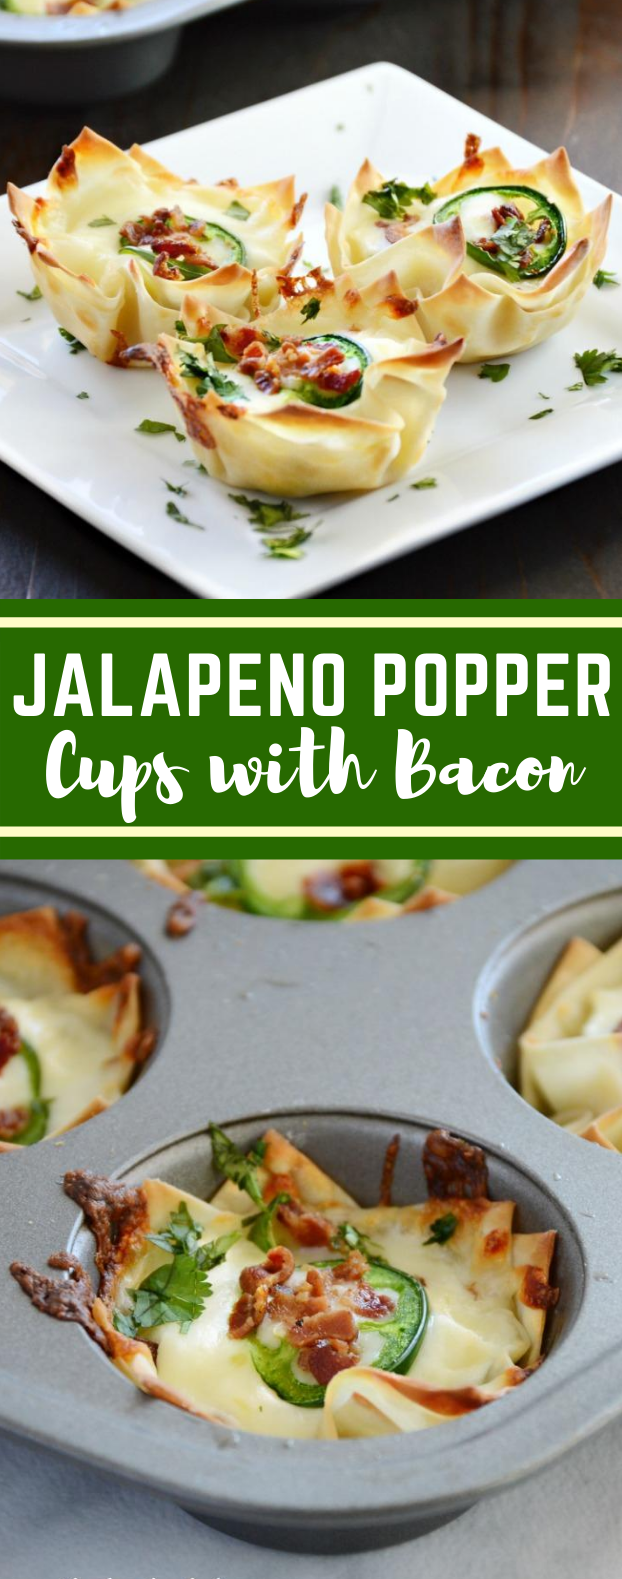 Jalapeno Popper Cups with Bacon #appetizers #lunch #jalapeno #meals #easyrecipe